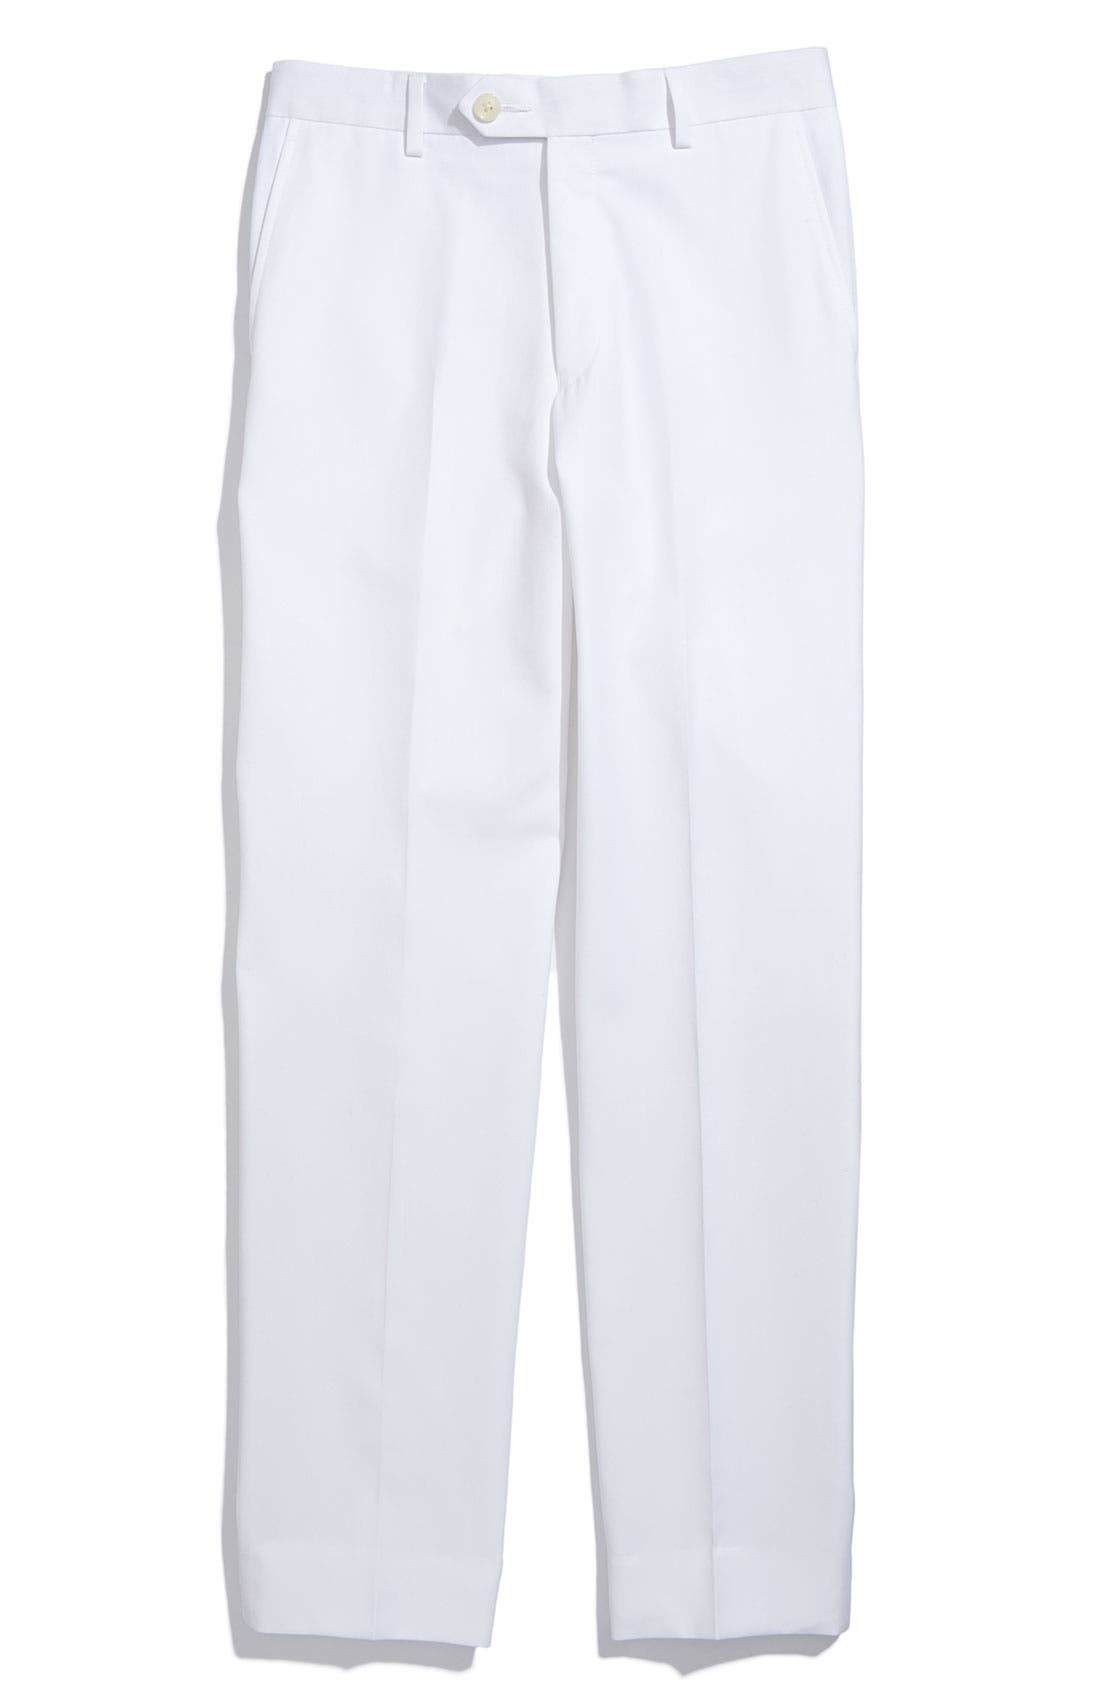 Alternate Image 1 Selected - Joseph Abboud Flat Front Dress Pants (Little Boys, Big Boys & Husky)